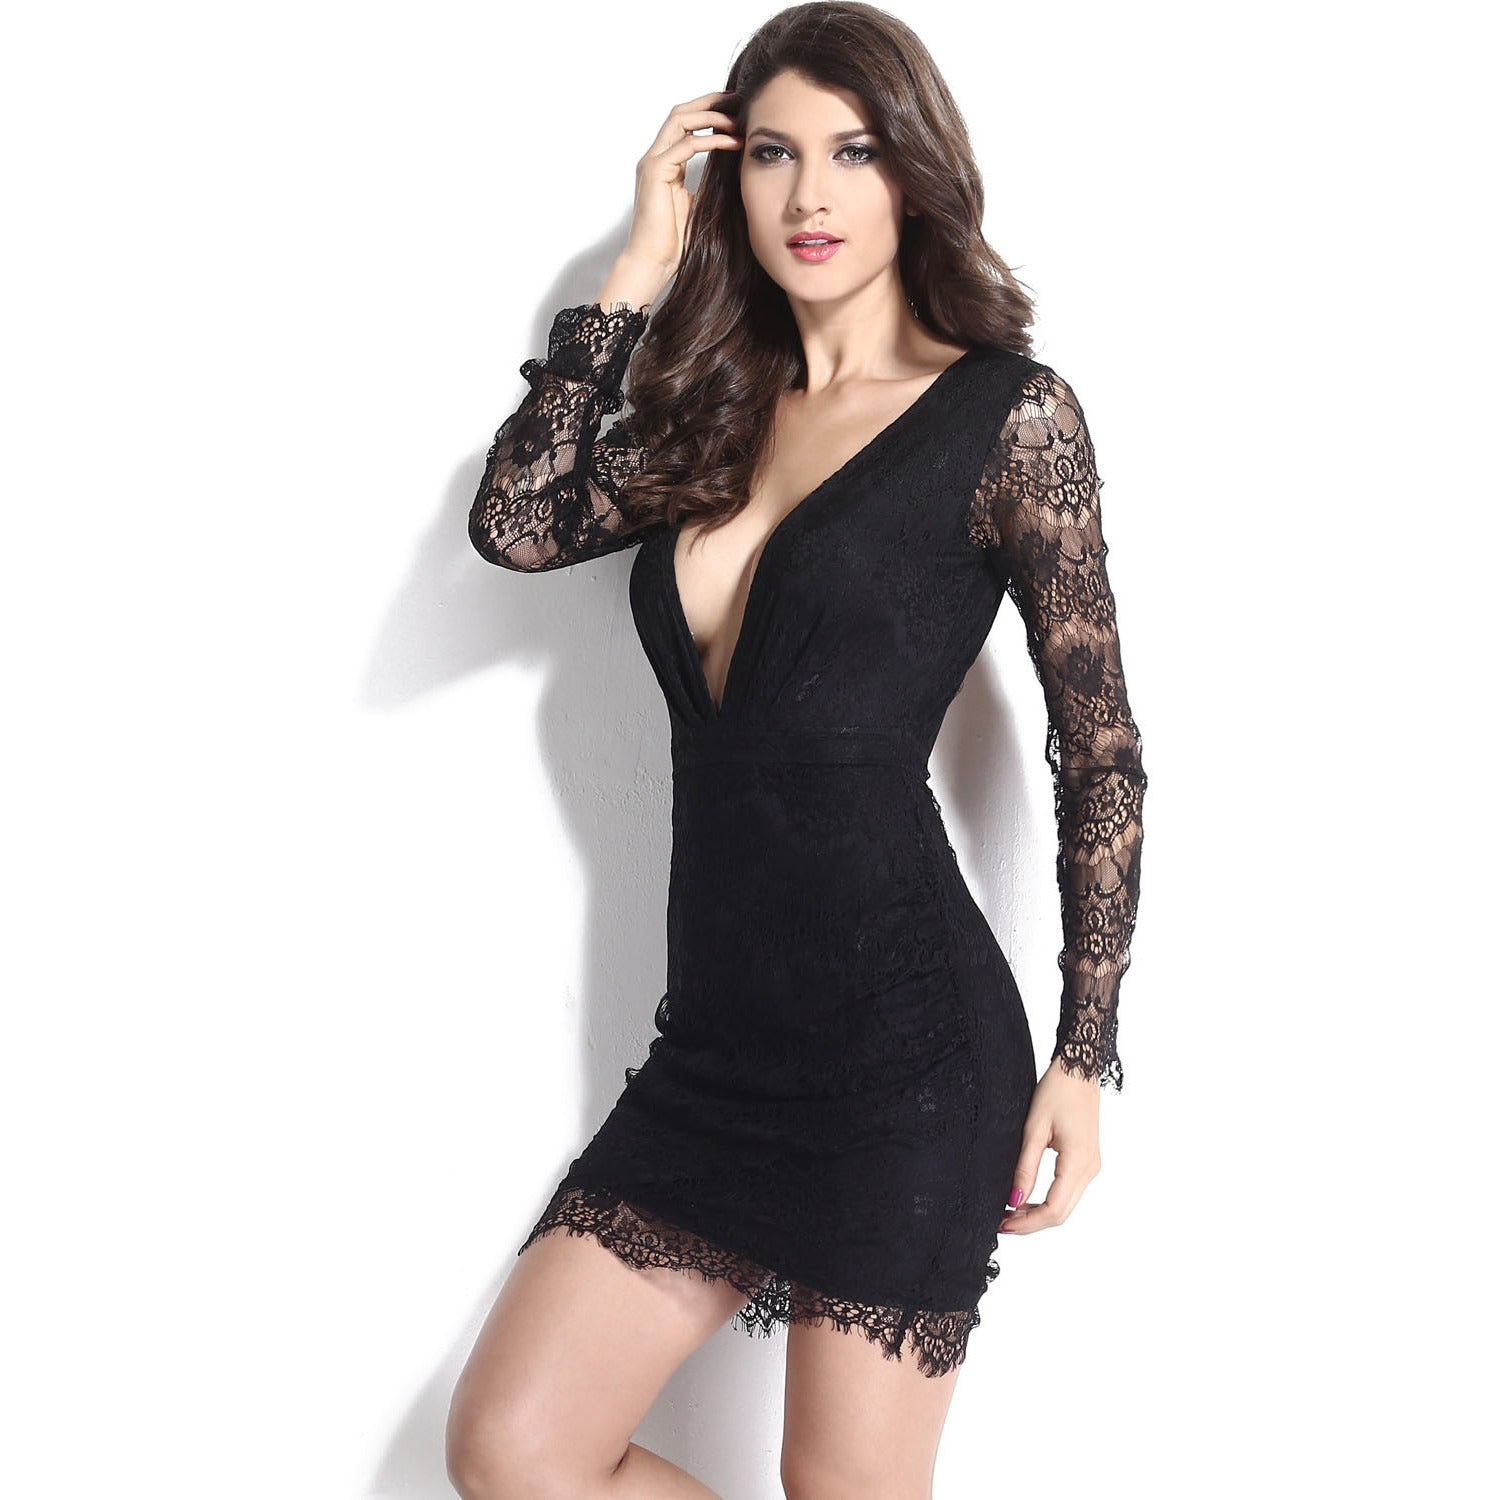 V-Neck Sleeve Lace Mini Dress Sale LAVELIQ - LAVELIQ - 6